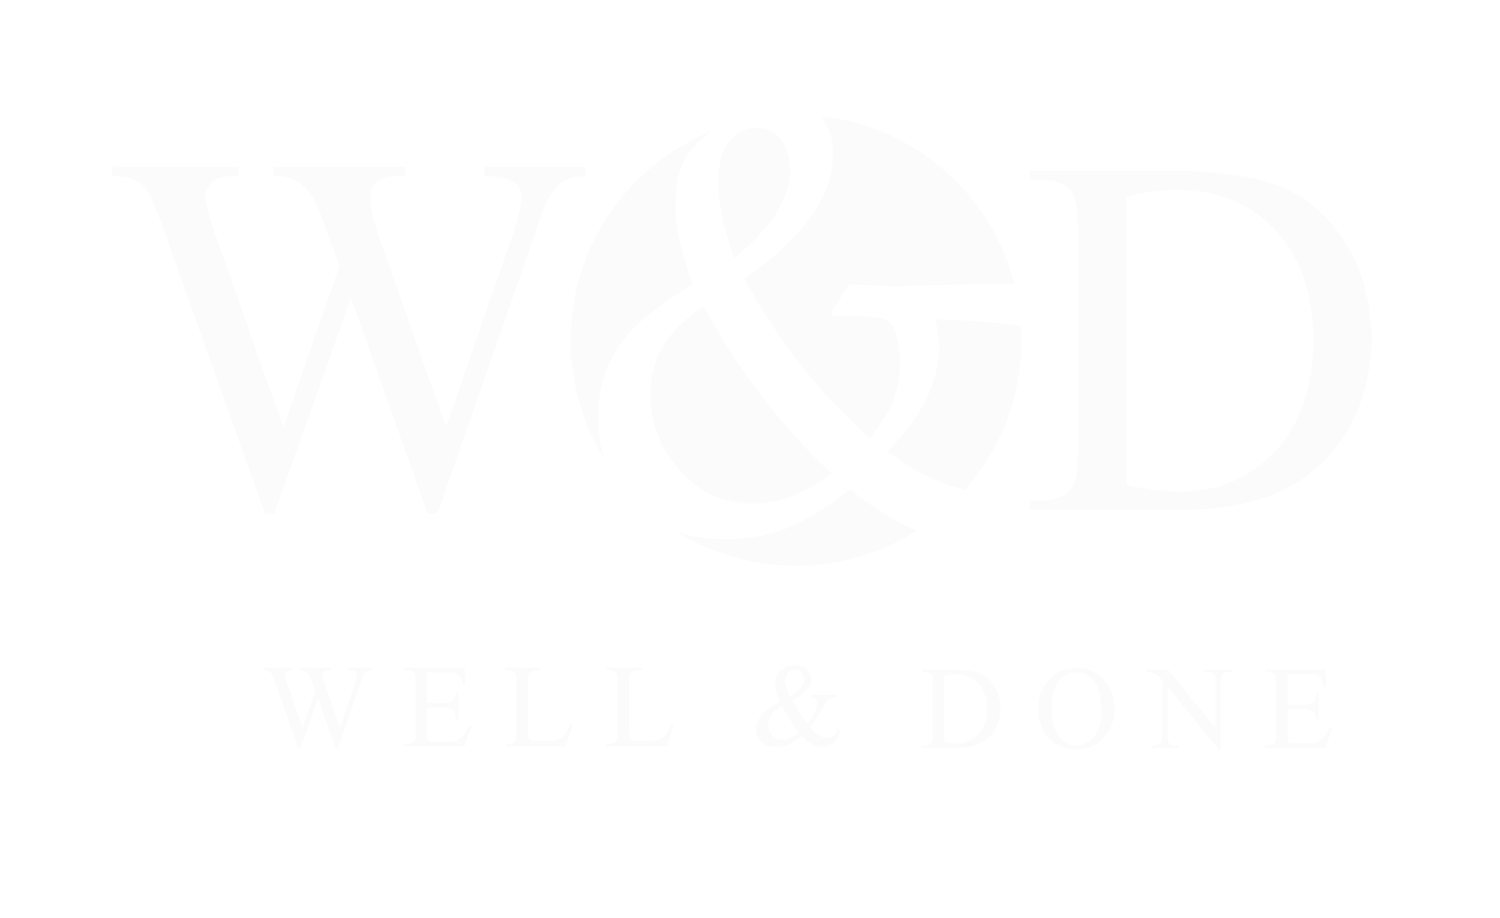 Well & Done